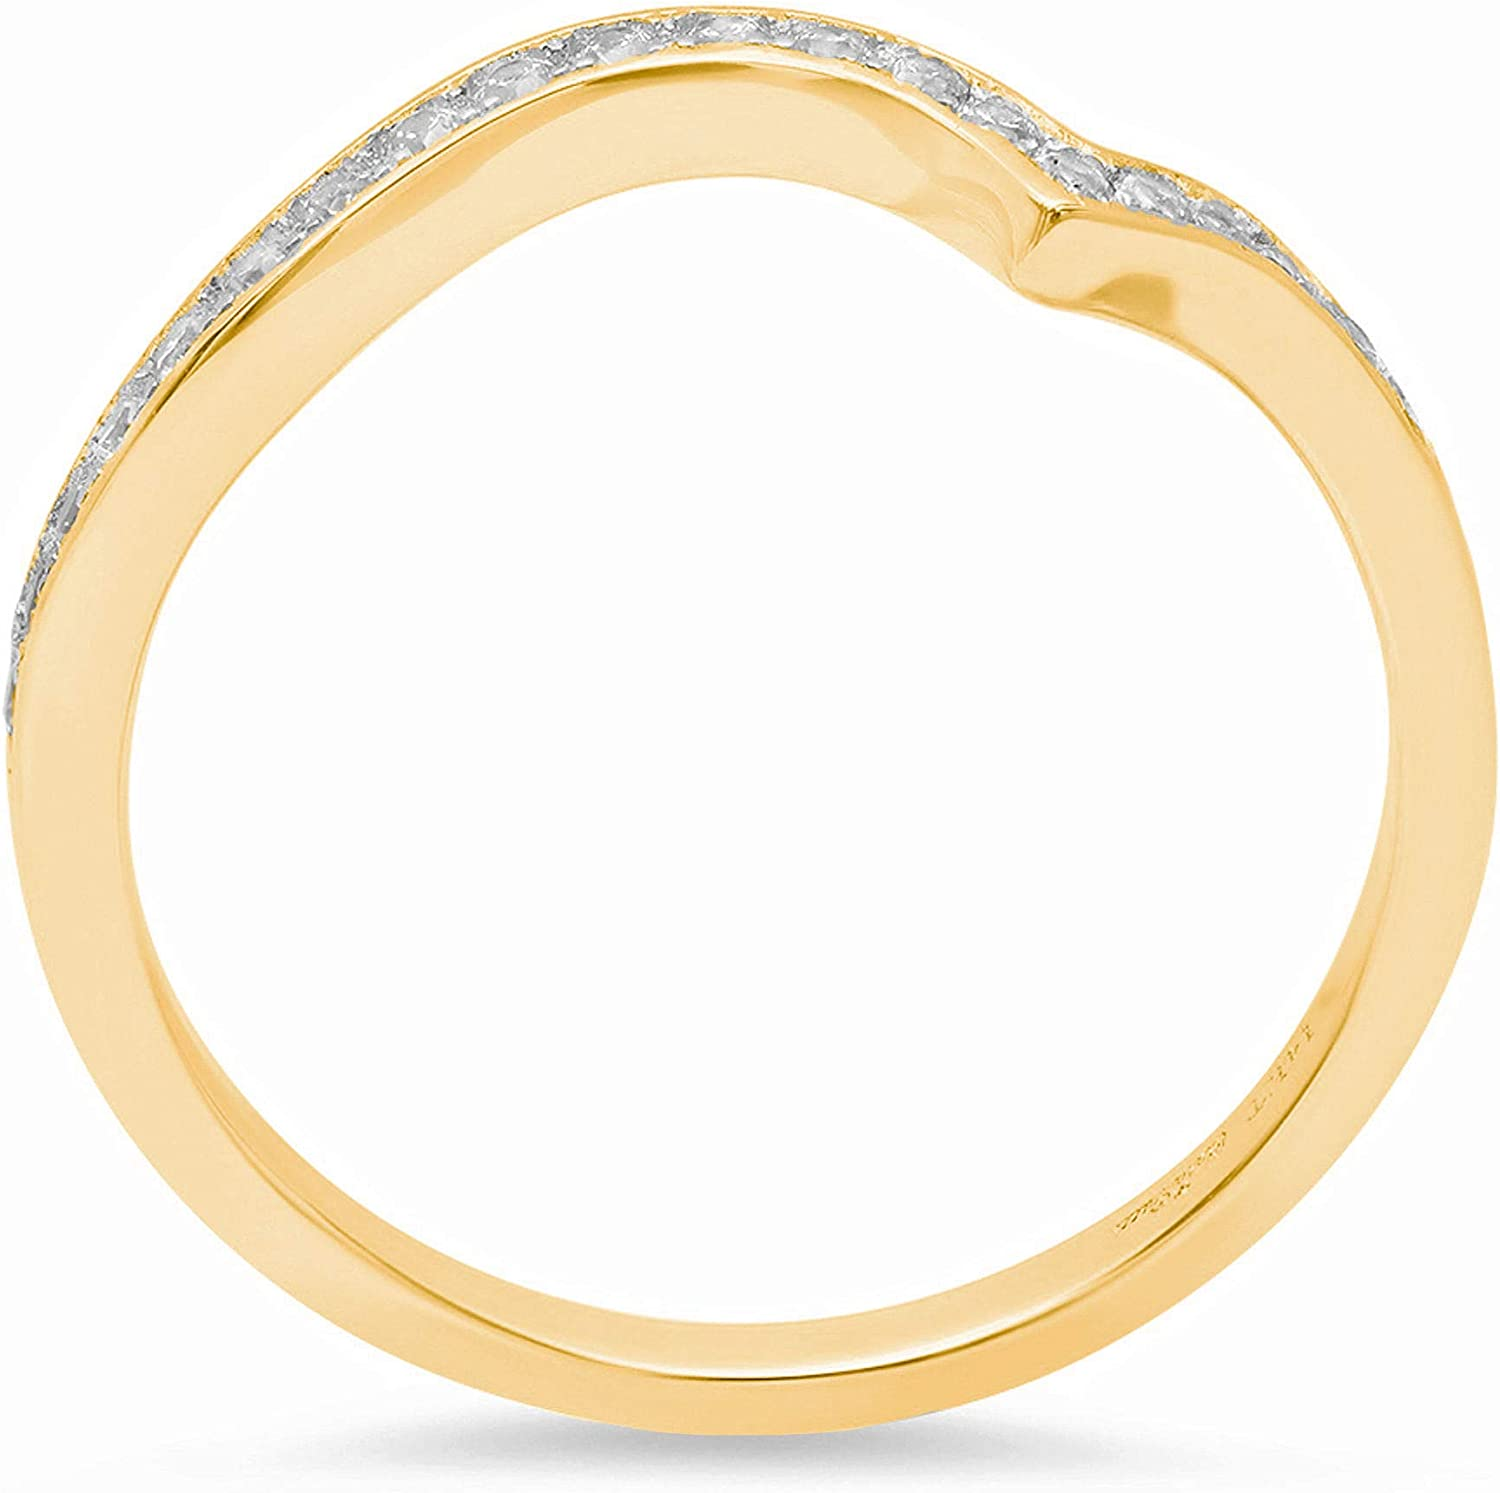 0.21ct Round Brilliant Cut Classic Designer Petite Skinny Infinity Statement Solitaire Stackable Bridal Curved Promise Engagement Wedding Anniversary Chevron V Ring Band Solid 14k Yellow Gold